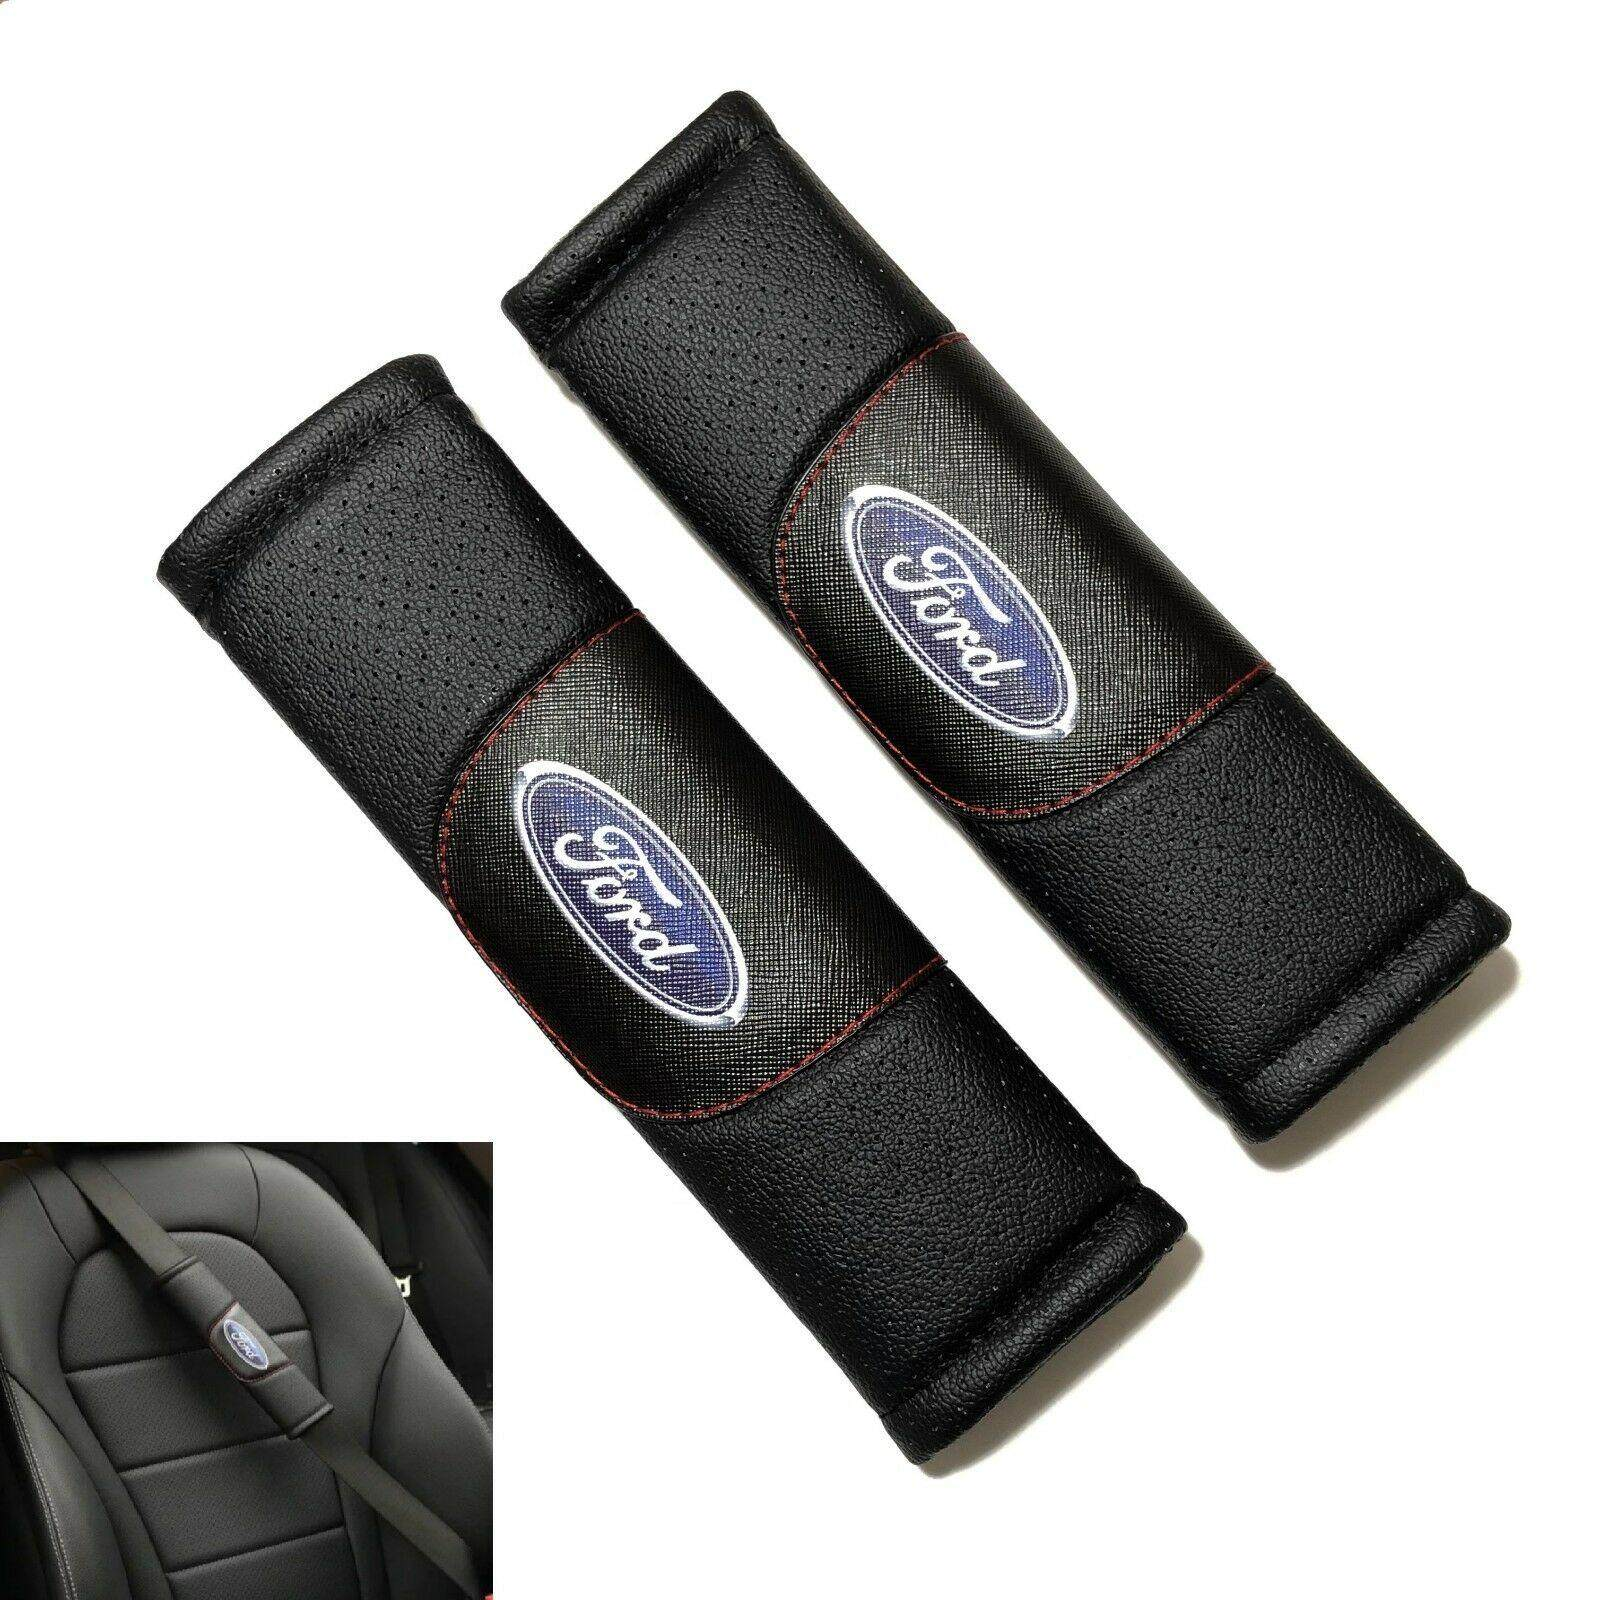 Car Seat Belt Pads Shoulder Cushion Cover Carbon Fiber for Mustang S-max Galaxy Touraeo Courier withSports Blue Font Version Stickers Pack of 2